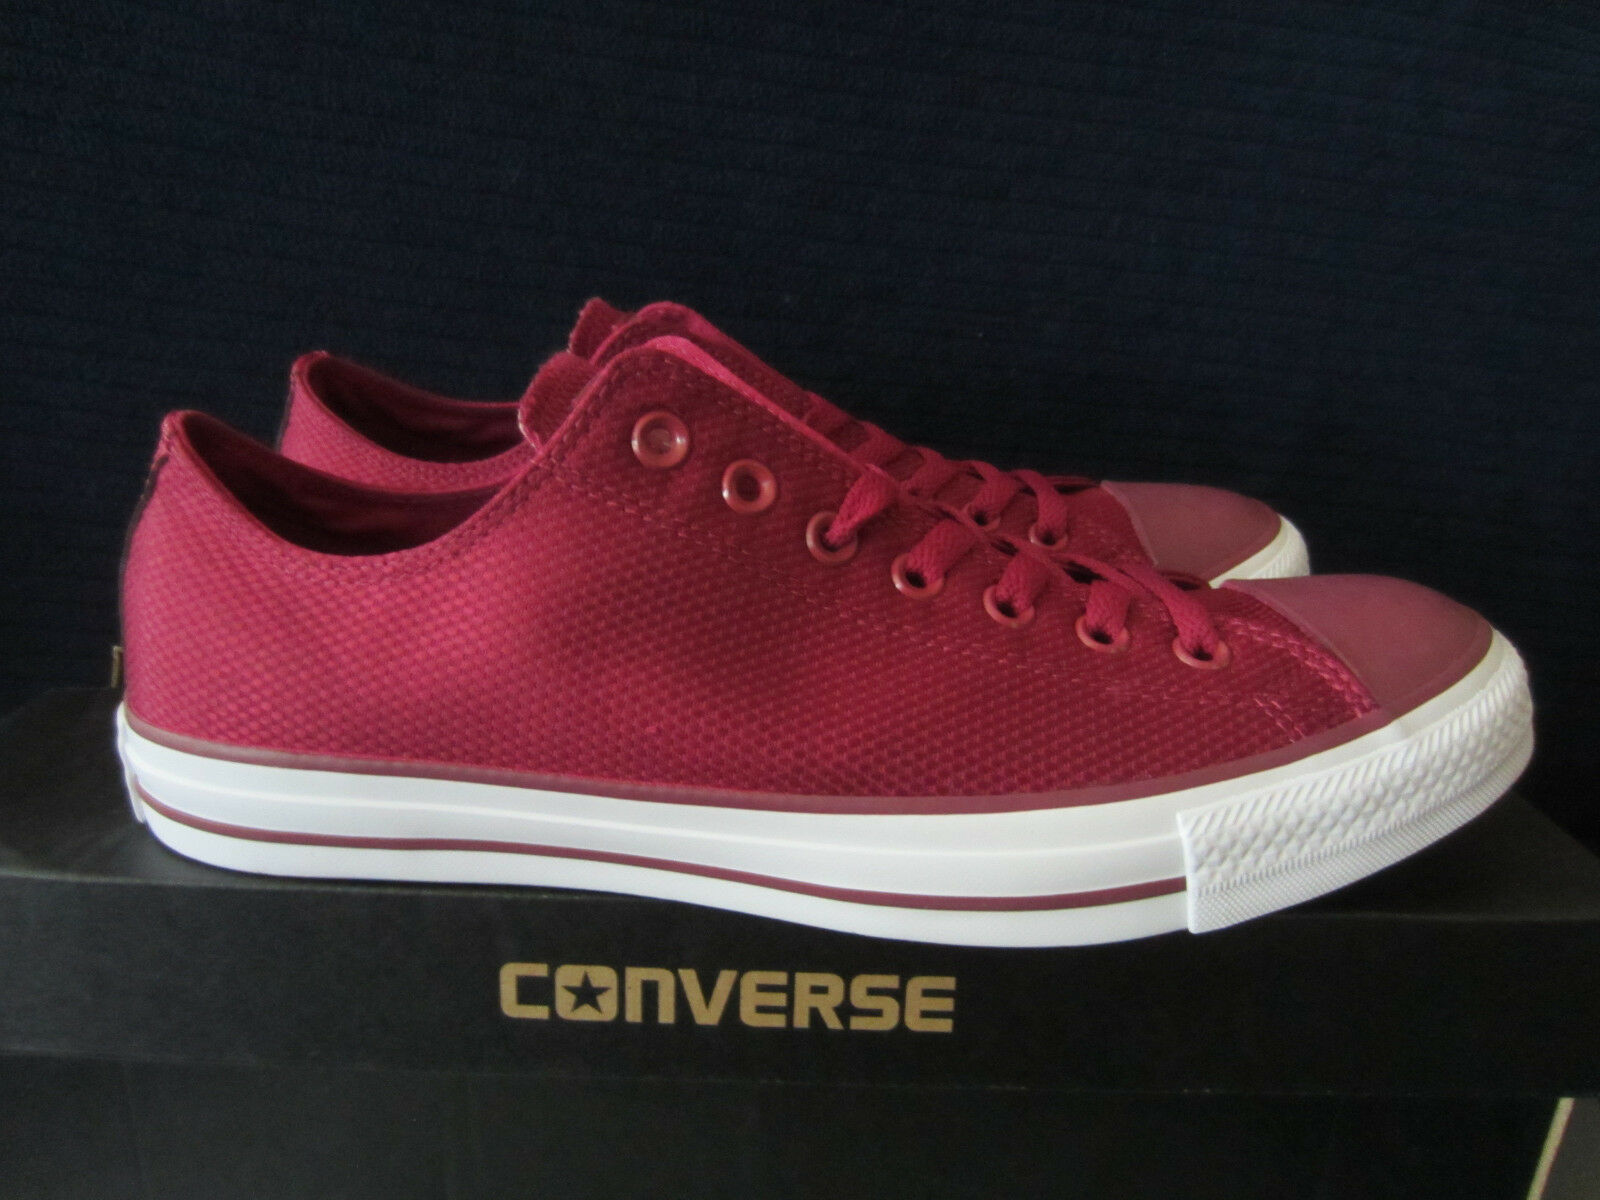 CONVERSE Chuck Taylor All Star OX 155420C Sneakers Bordeaux Gr.44,5, 45 NEU OVP!